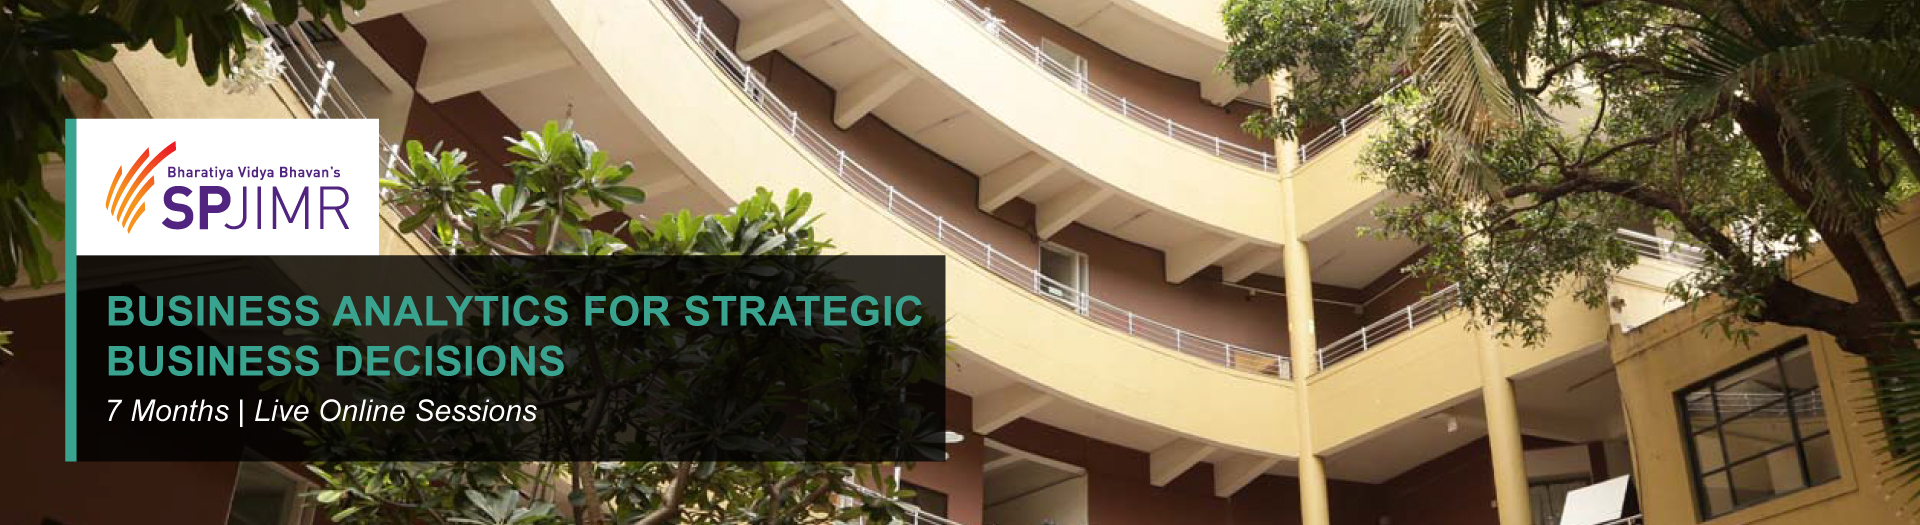 CERTIFICATE PROGRAMME IN BUSINESS ANALYTICS FOR STRATEGIC BUSINESS DECISIONS